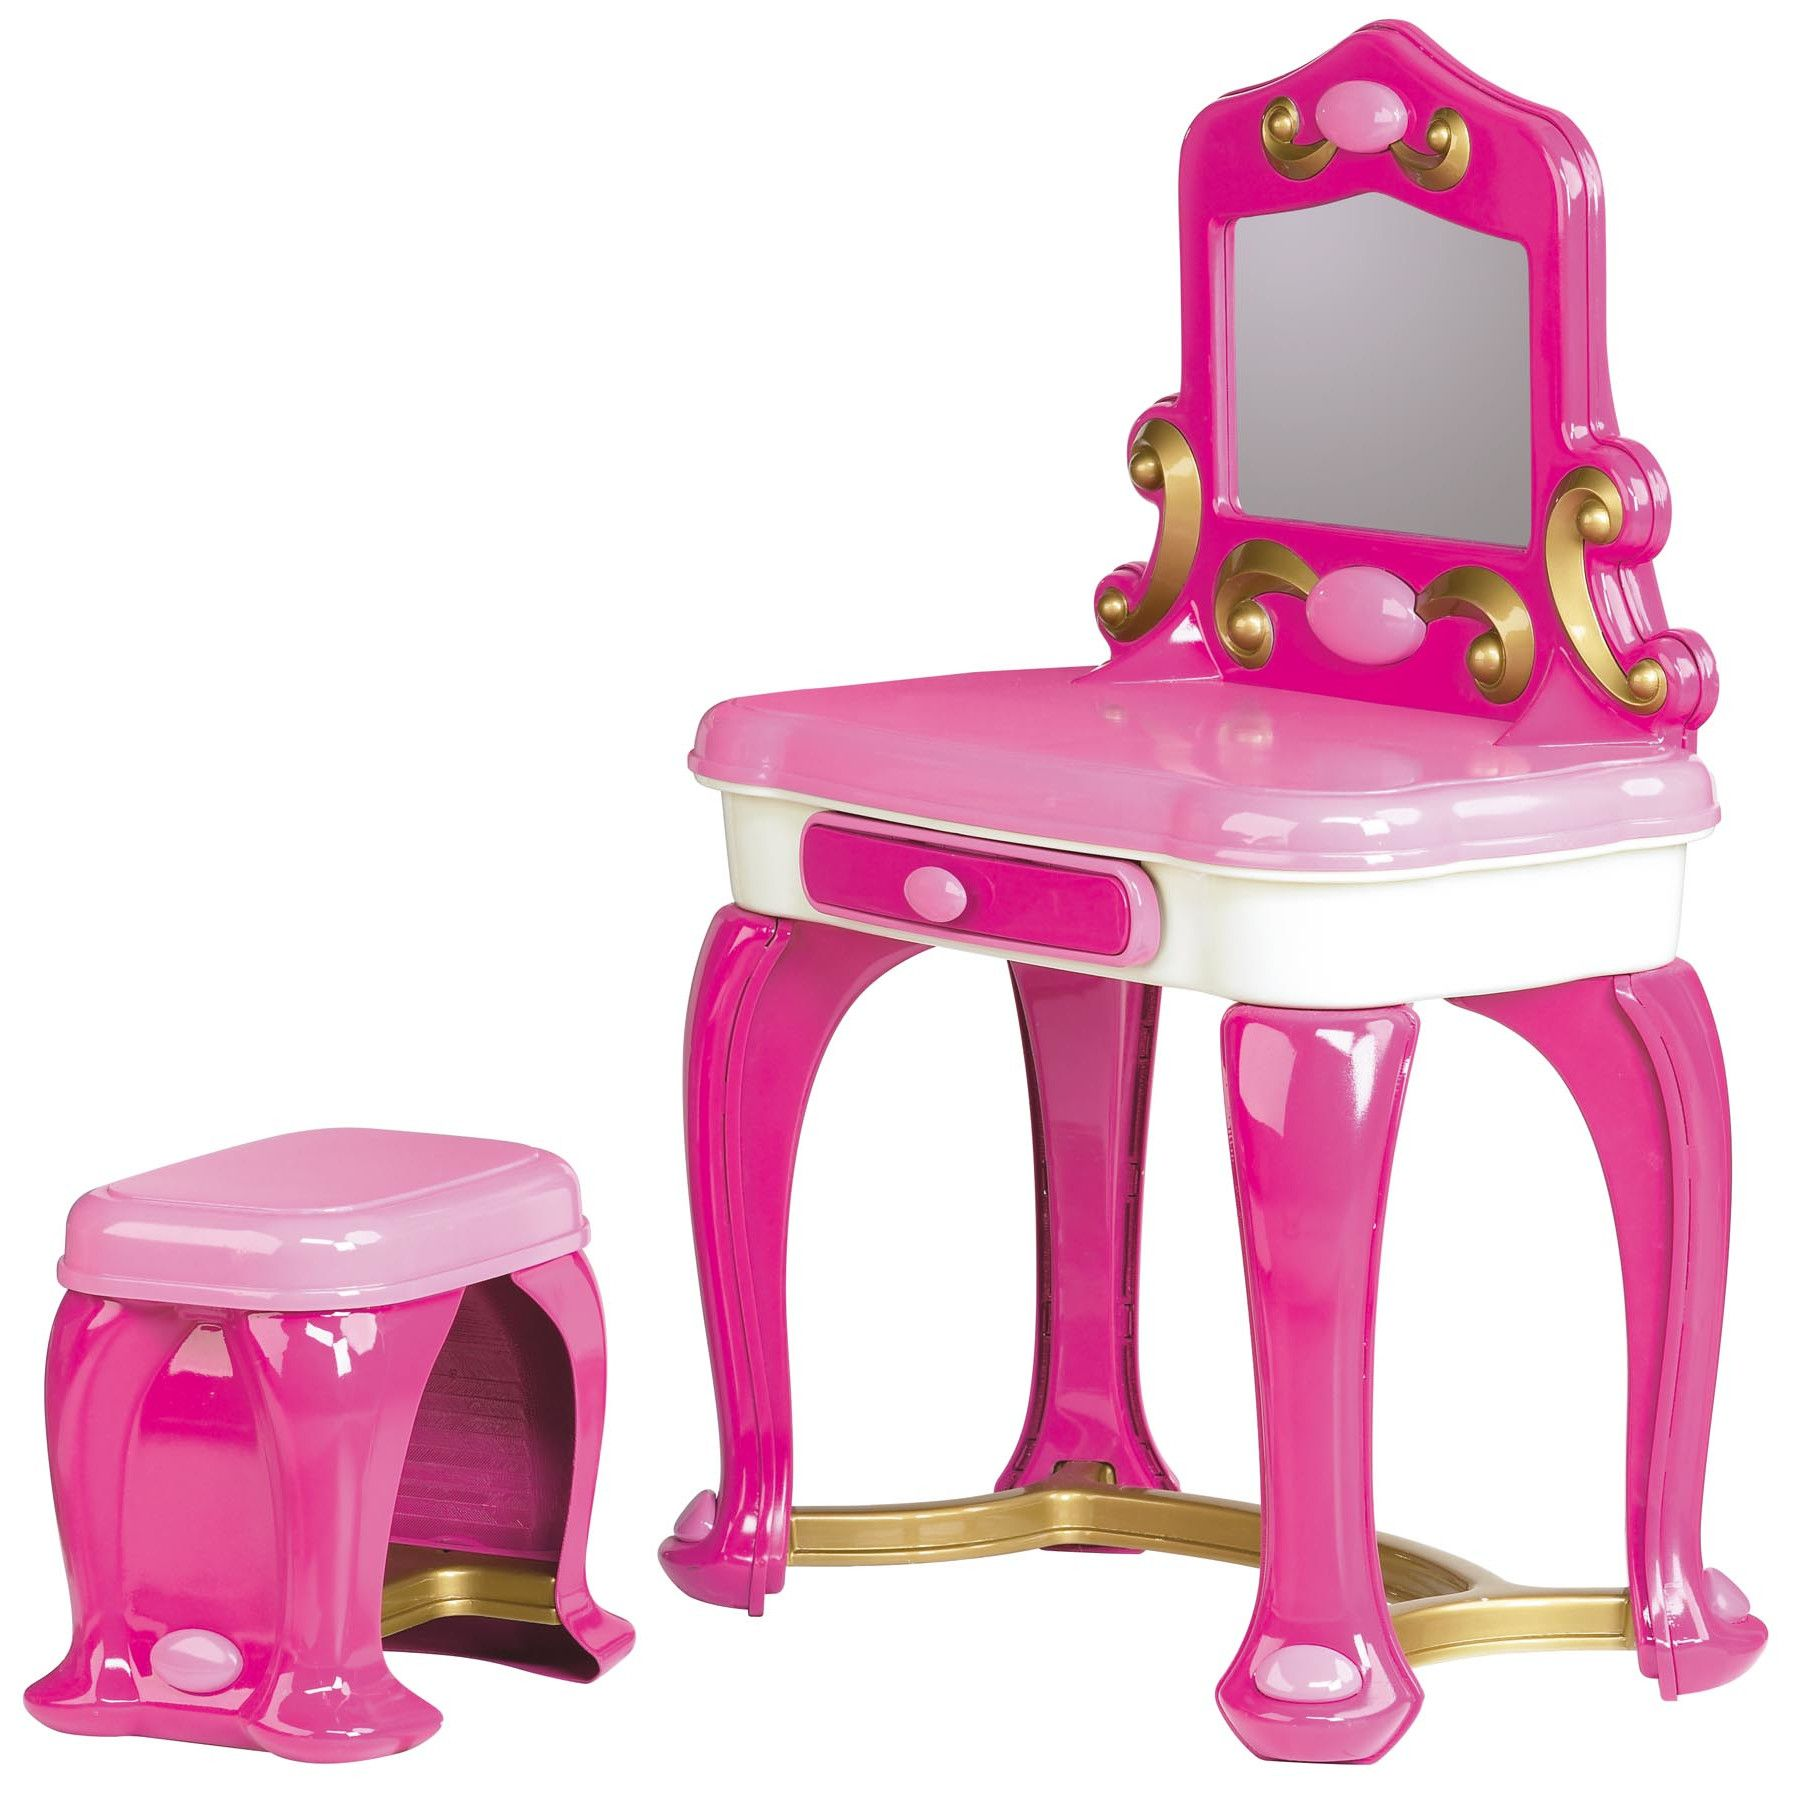 new product b5c80 db5f0 American Plastic Toys Deluxe Vanity Set with Mirror | All ...